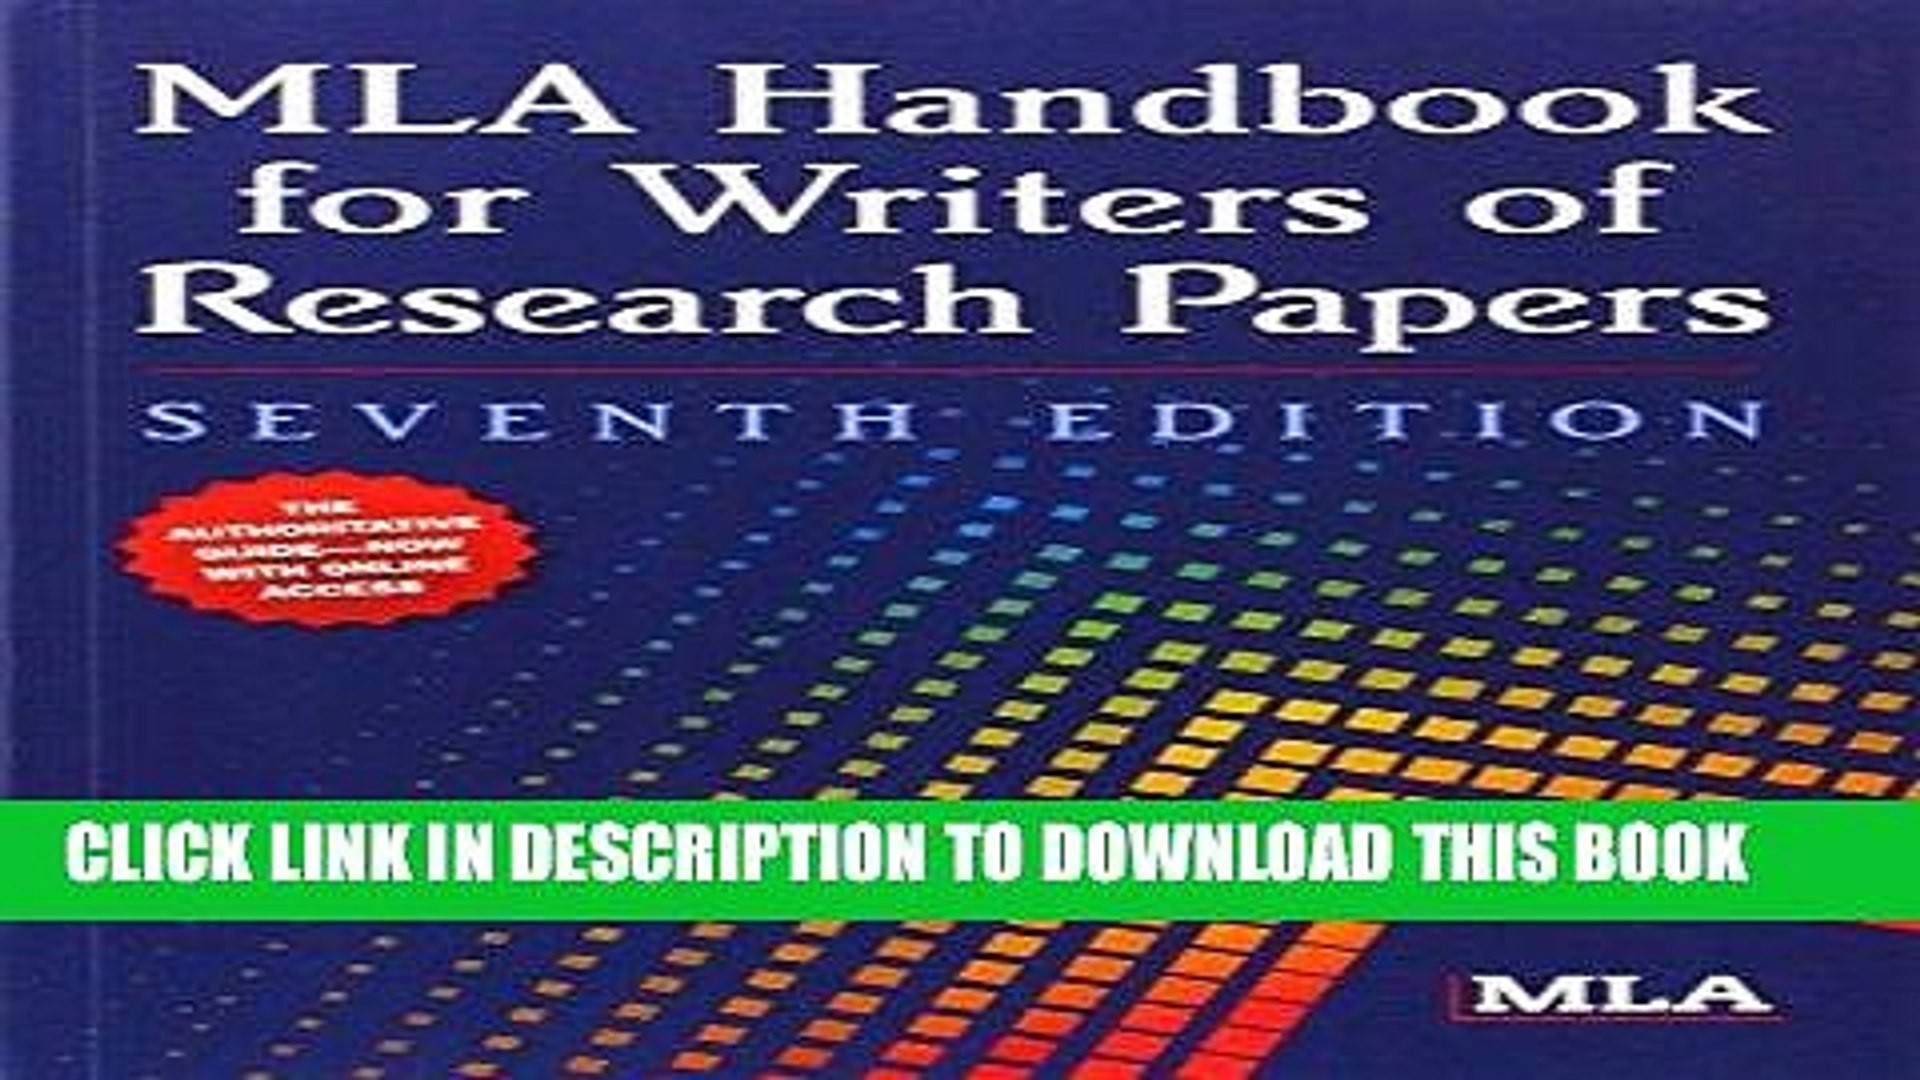 002 Mla Handbook For Writers Of Research Papers 7th Edition Pdf Download Paper X1080 F3  Fearsome Free1920